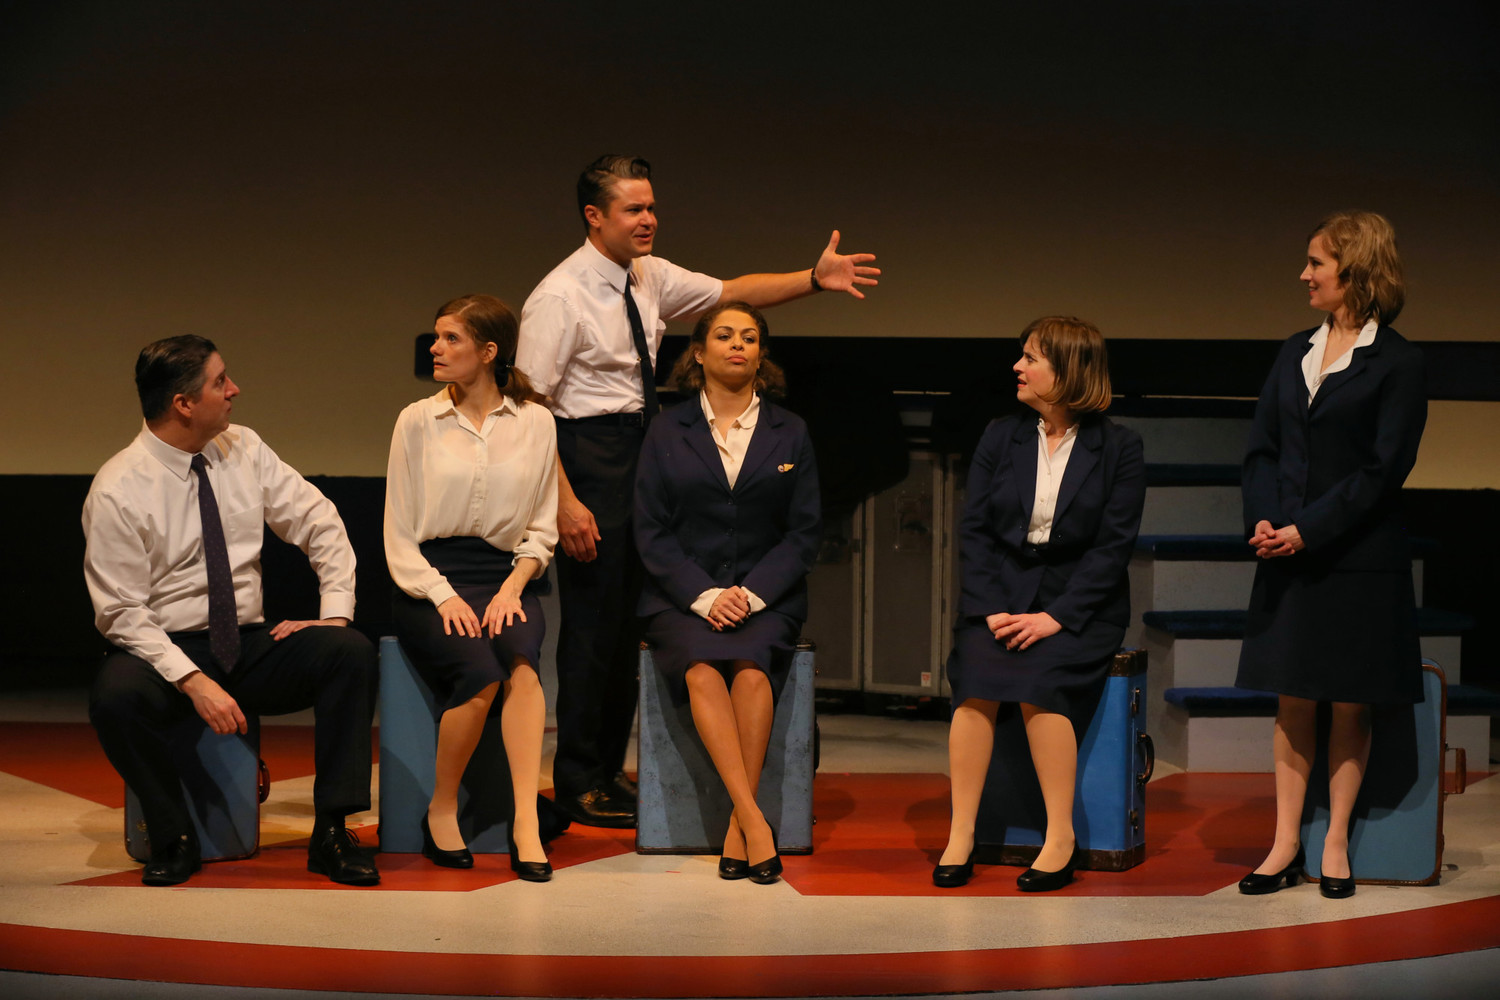 BWW Review: World Premiere of Fast, Funny, Smart STEWARDESS! at History Theatre